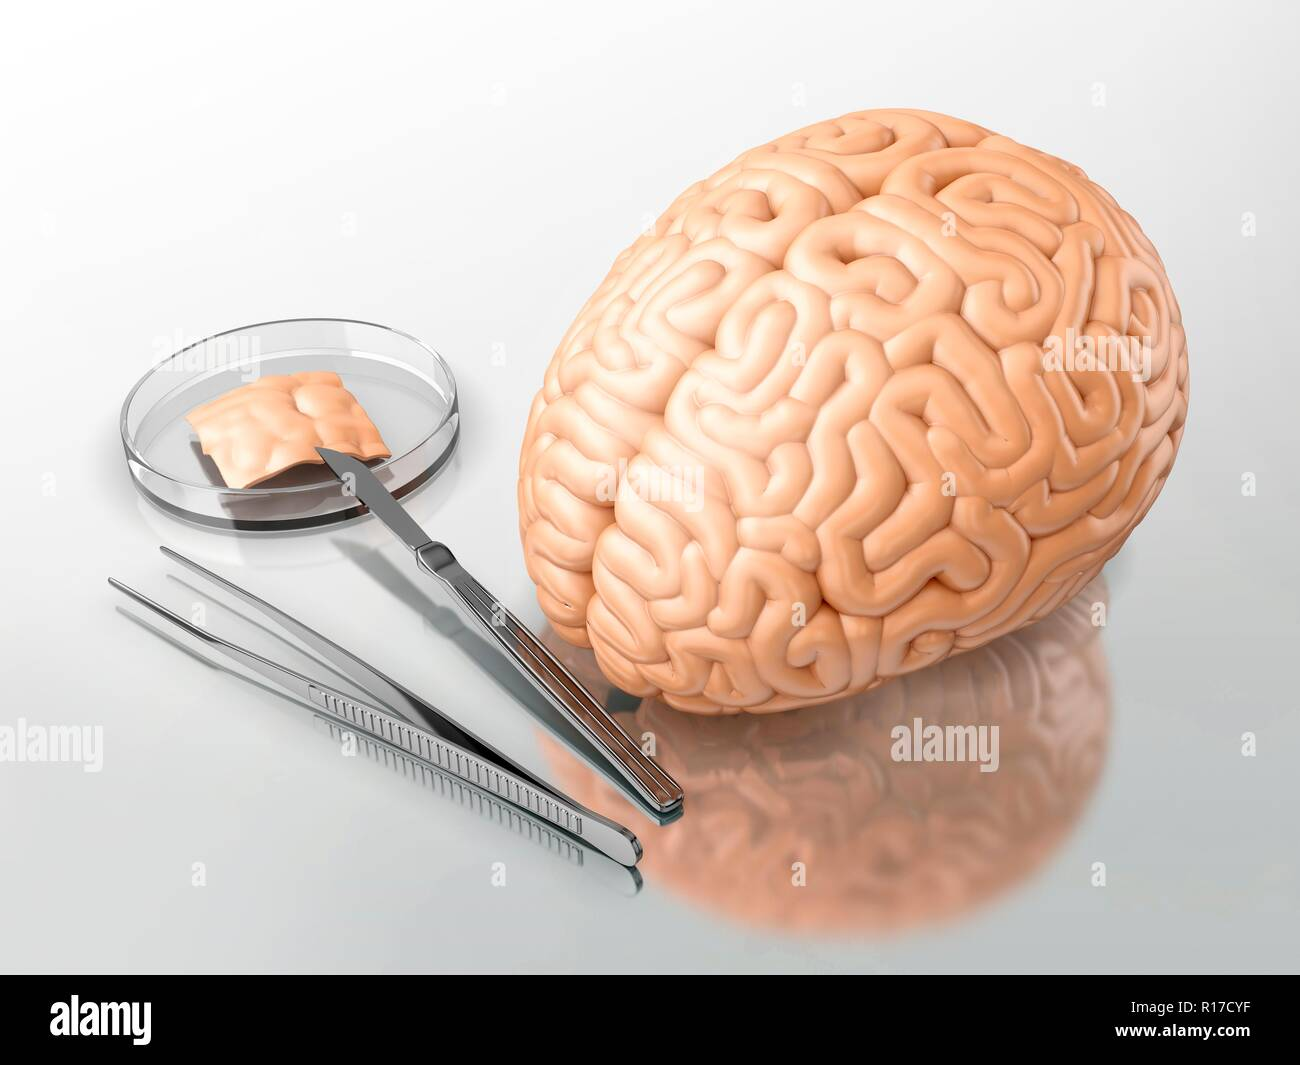 Human brain and surgical instruments on a laboratory table